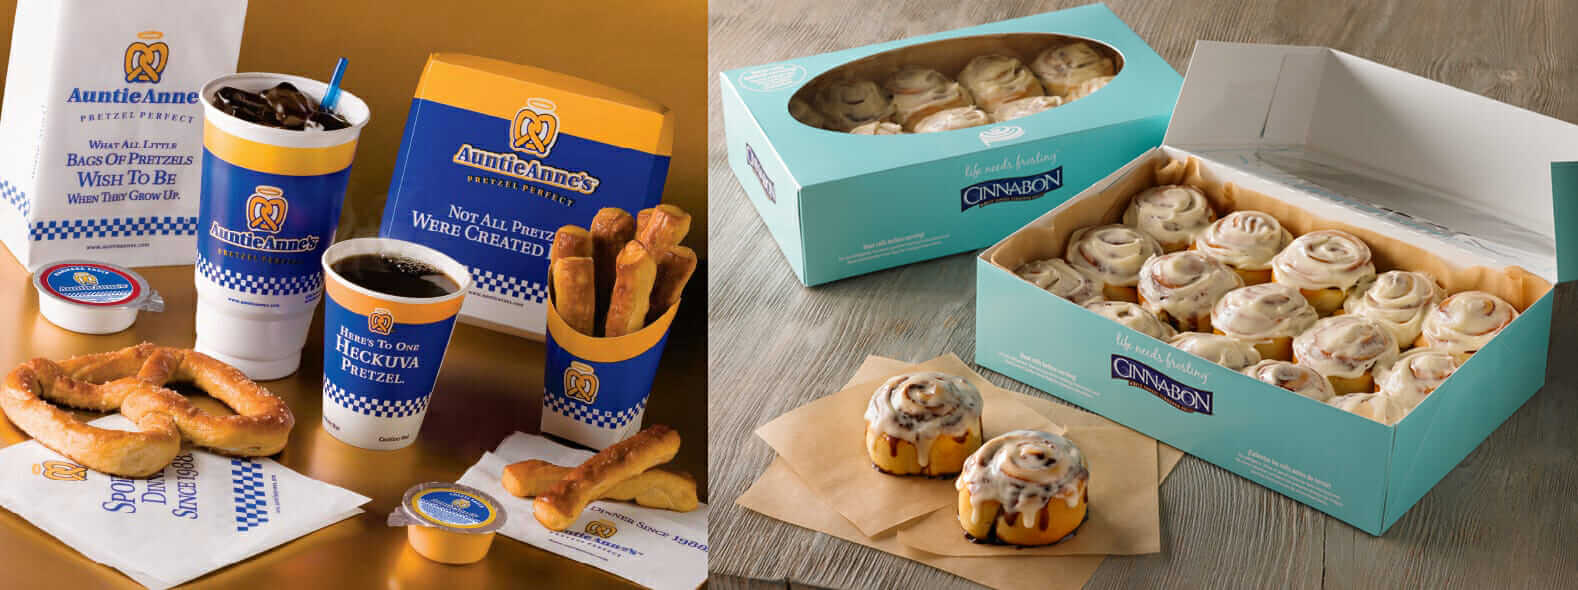 No Truce Between Cinnabon And Auntie Anne S Fast Food